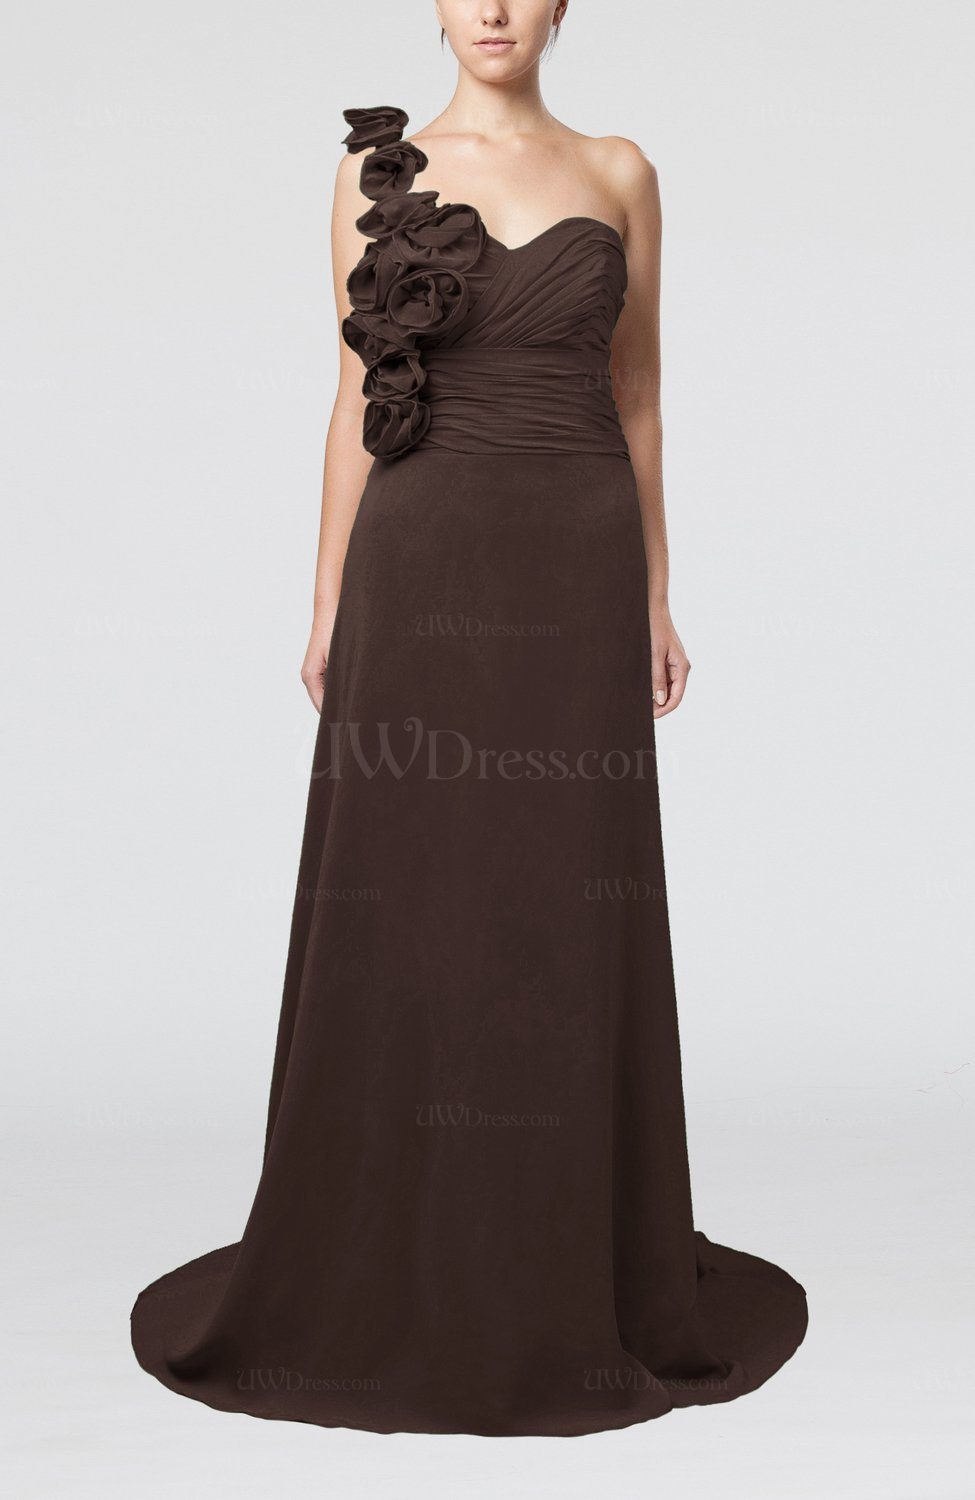 44d2f0db20f Chocolate Brown Elegant A-line Asymmetric Neckline Zip up Flower Bridesmaid  Dresses (Style D55861)